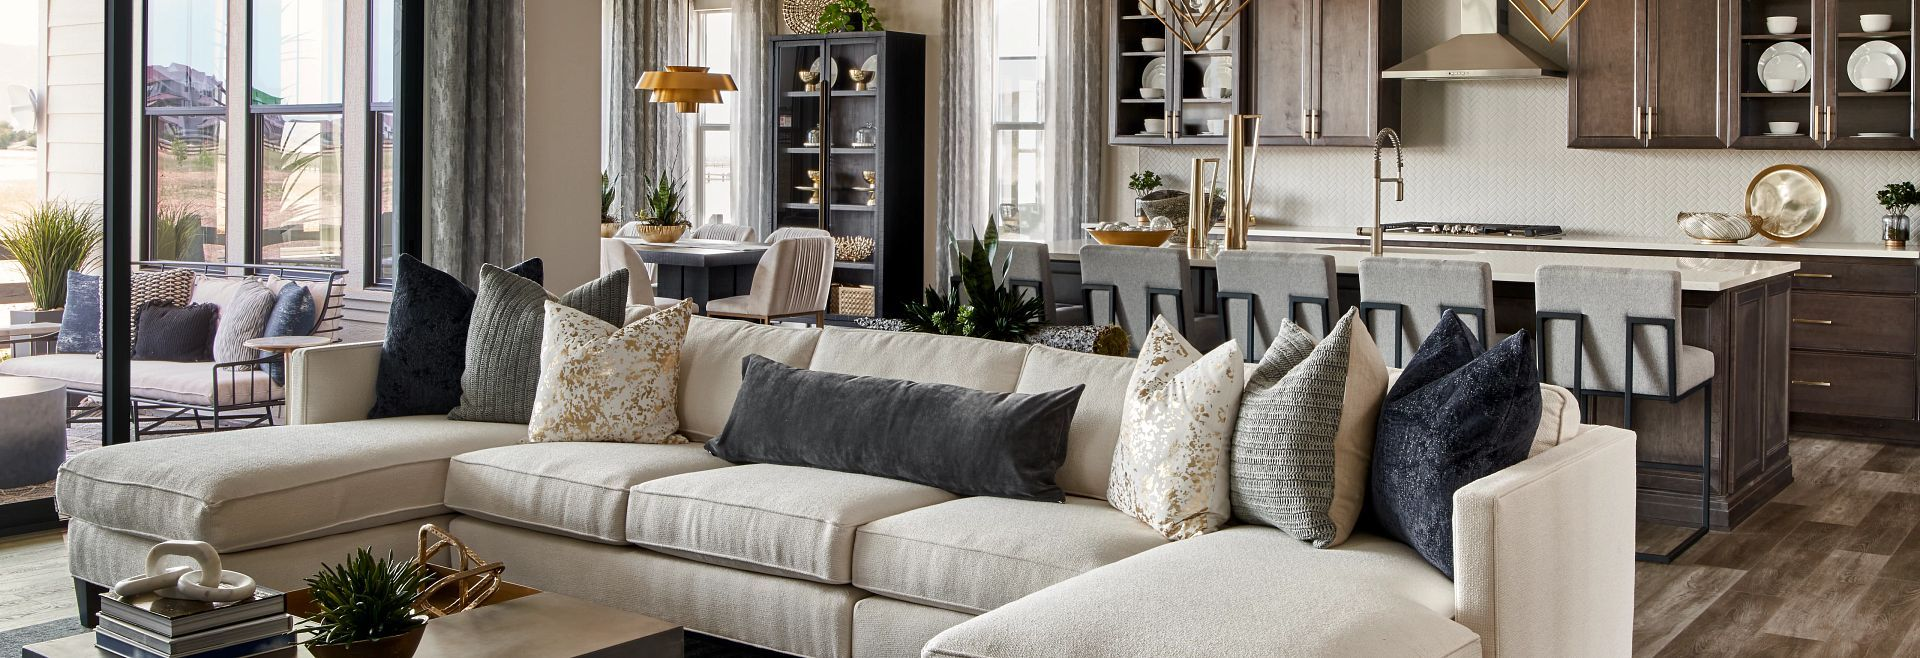 Living Area featured in the 5087 Stillwater By Shea Homes in Denver, CO